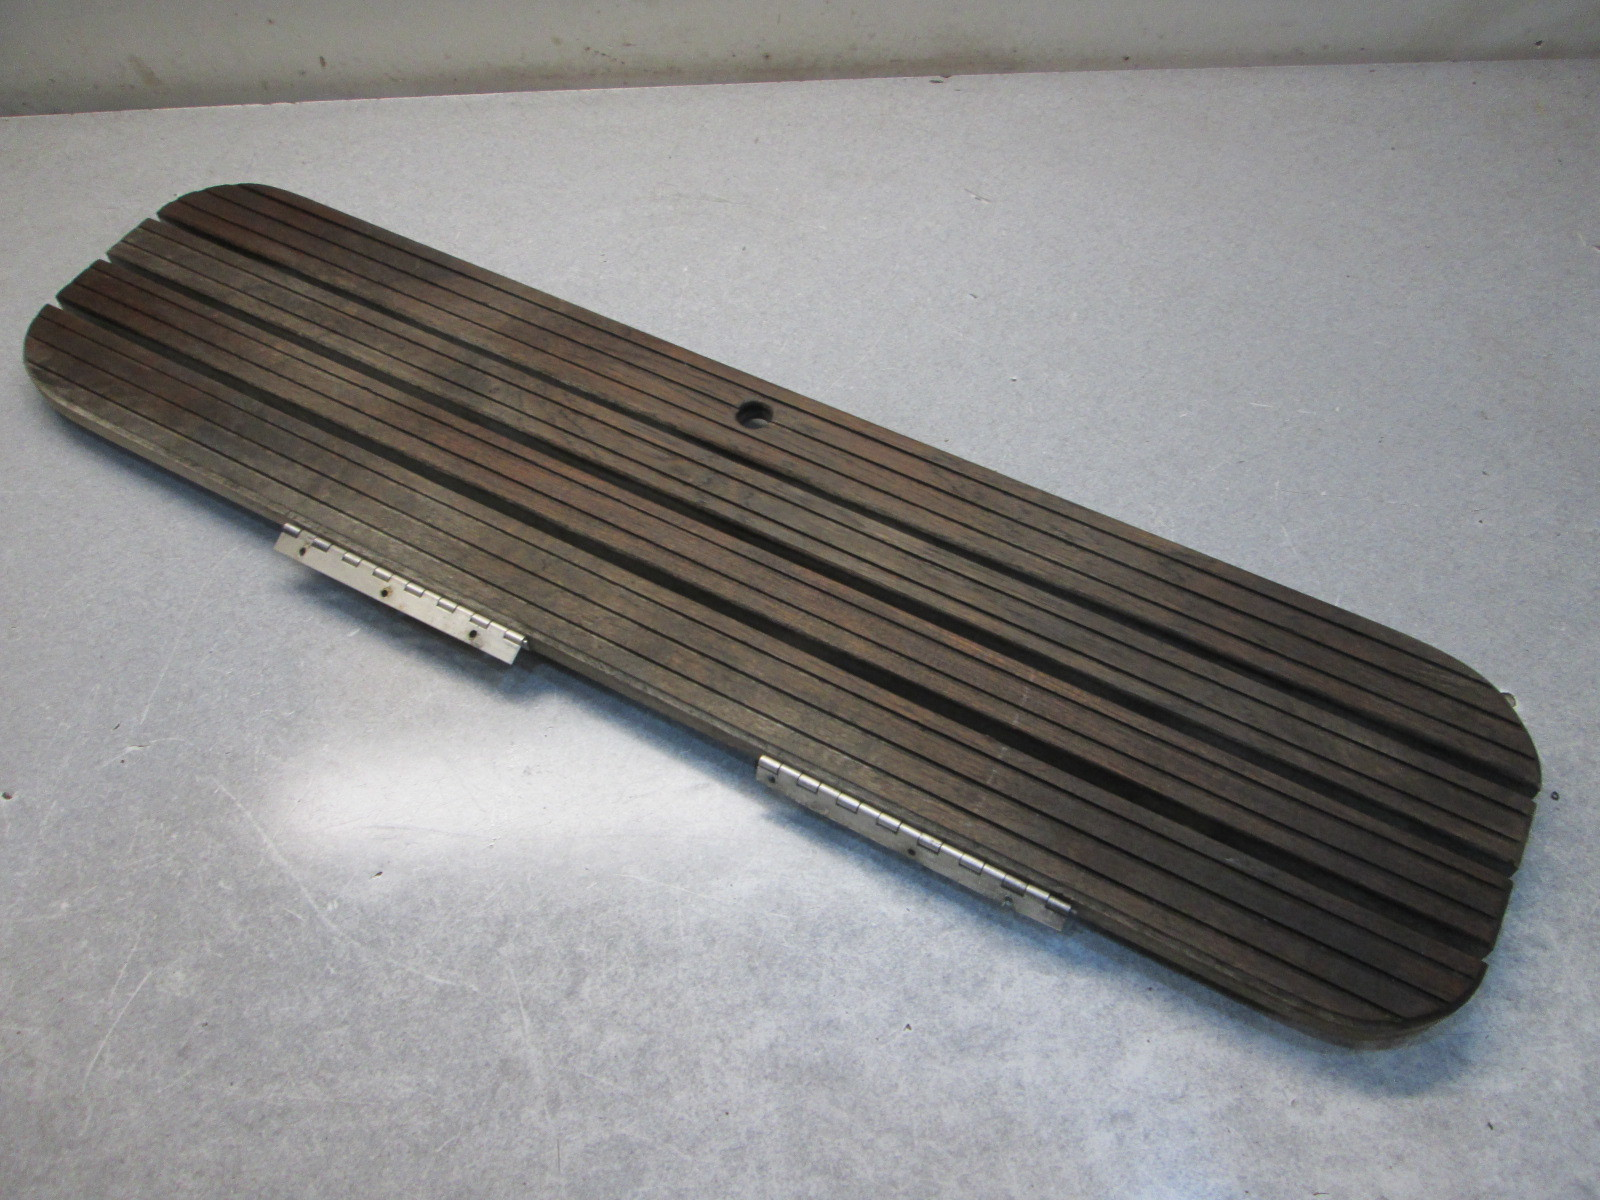 Teak Wood Boat Floor Deck Hatch Cover 41 3/4\